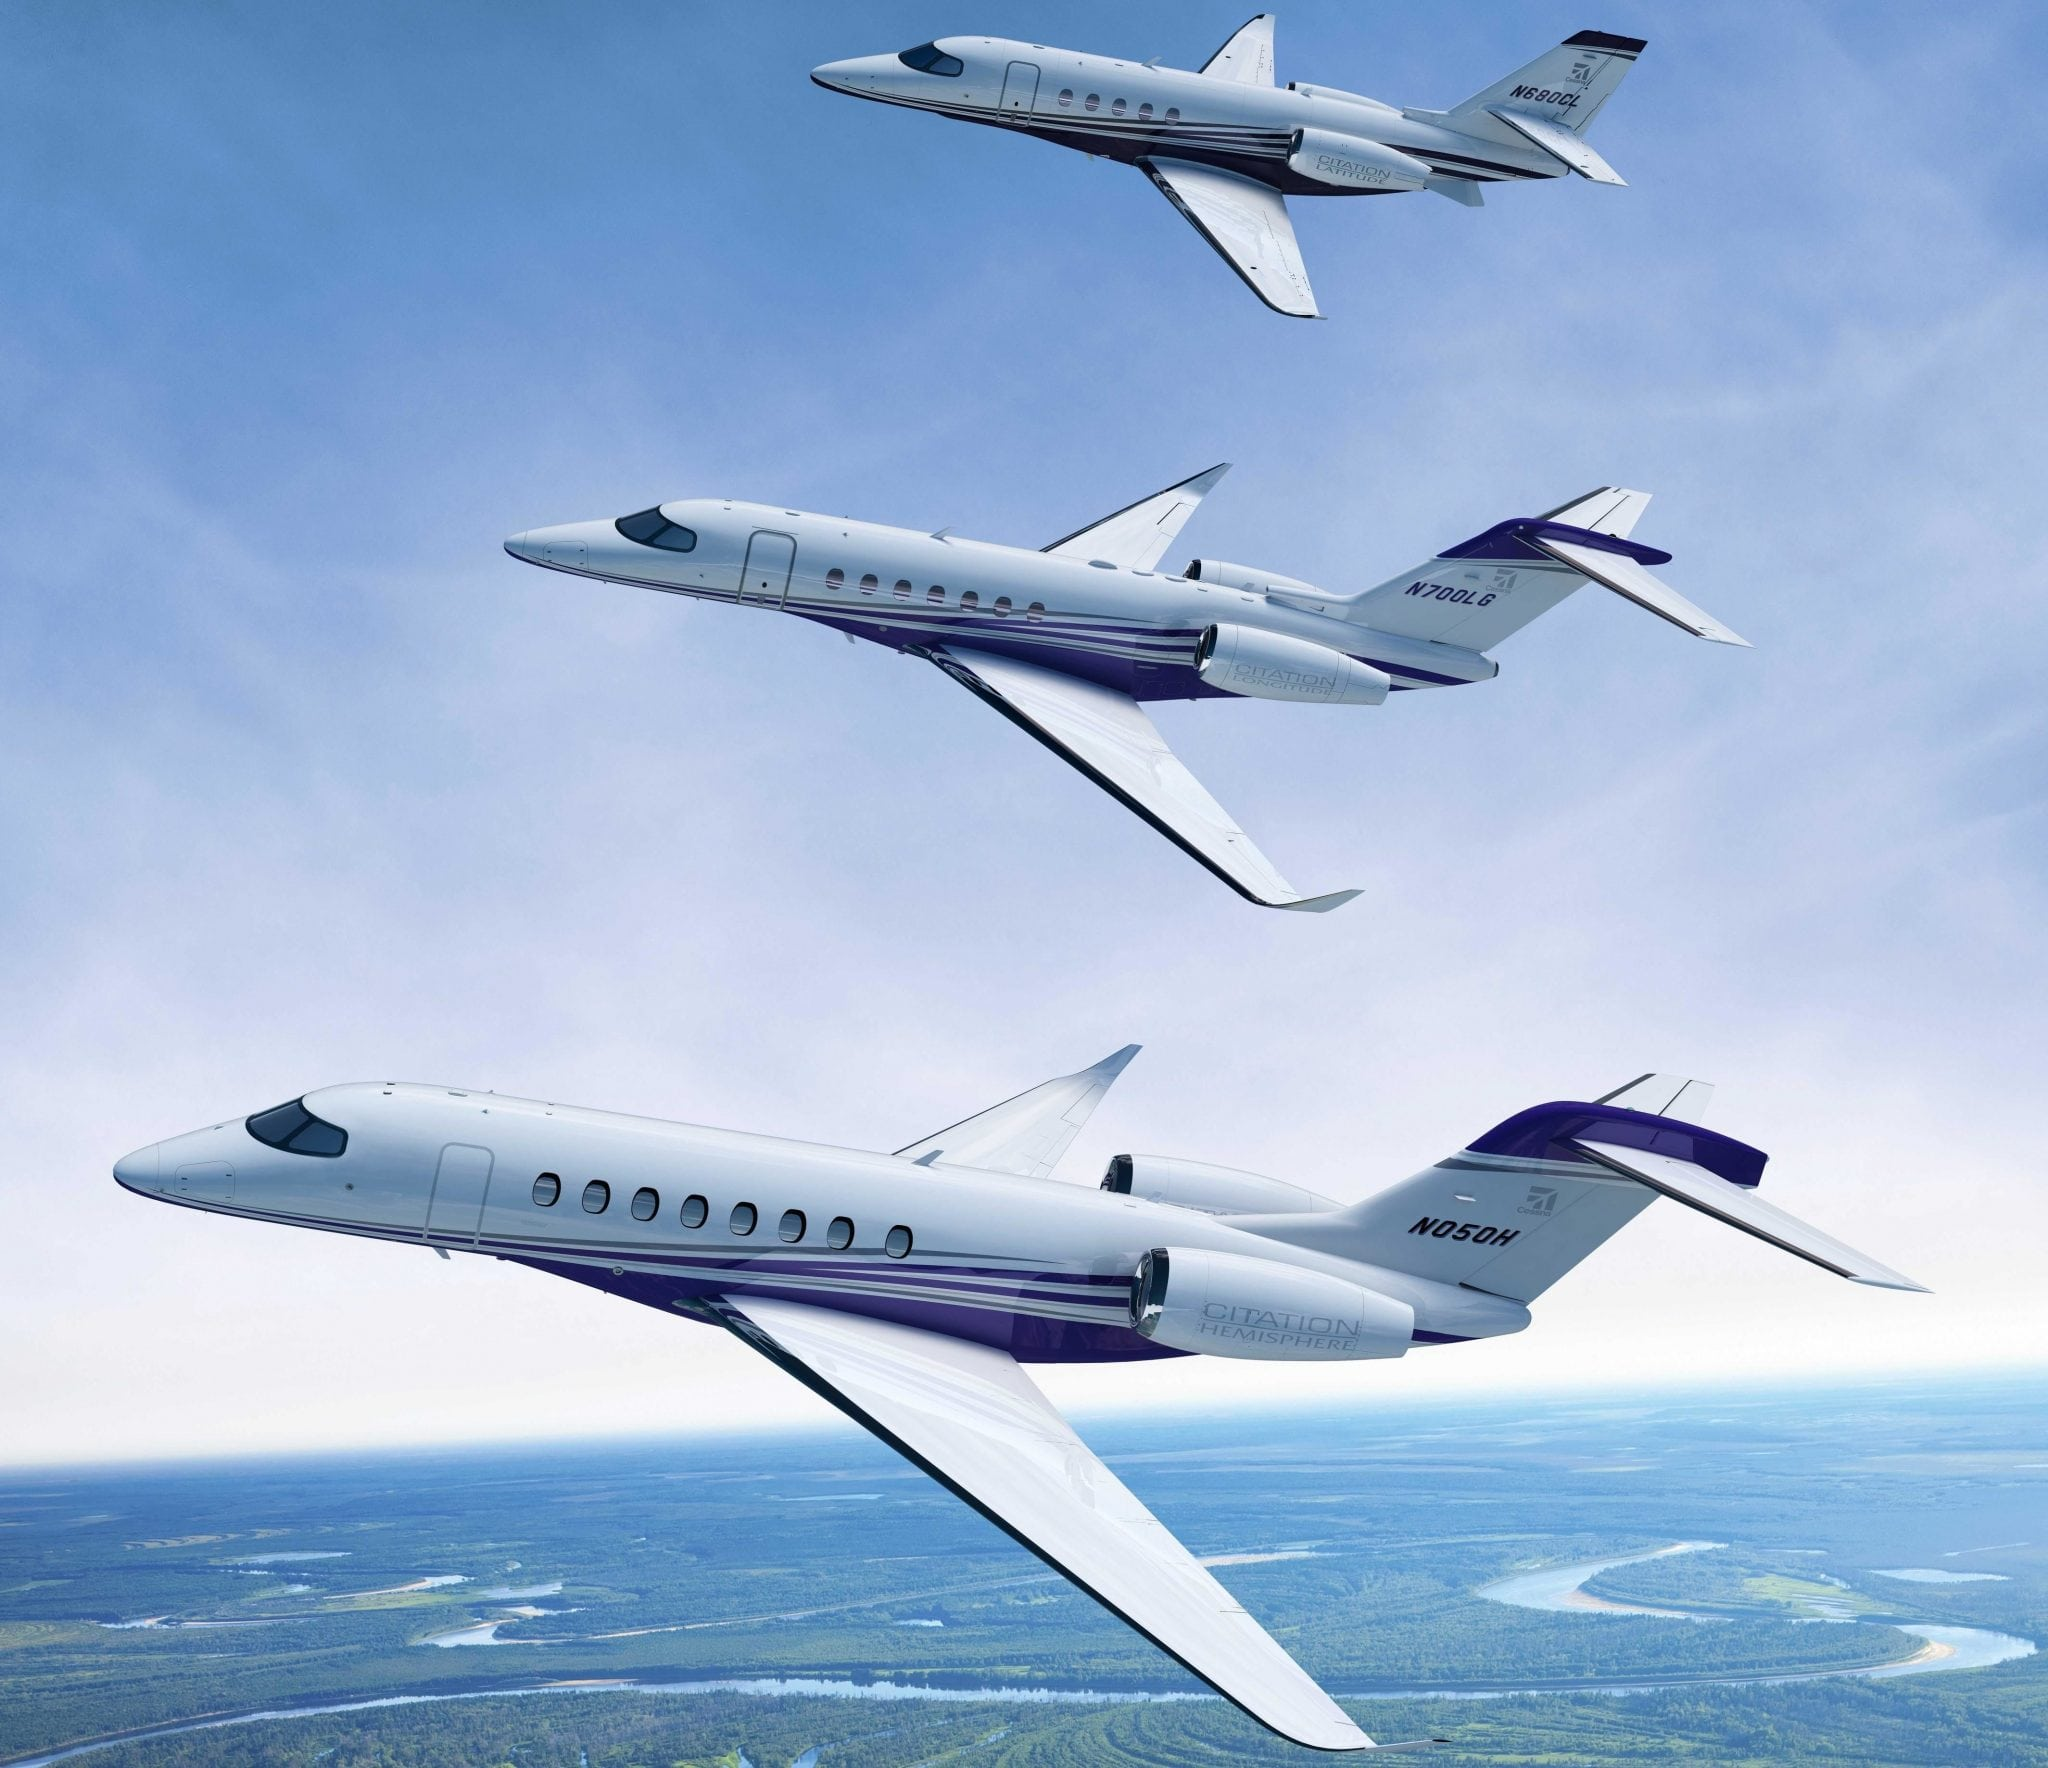 The Longitude and Hemisphere will join the Citation Latitude to complete a new, large-cabin, three-aircraft Citation family